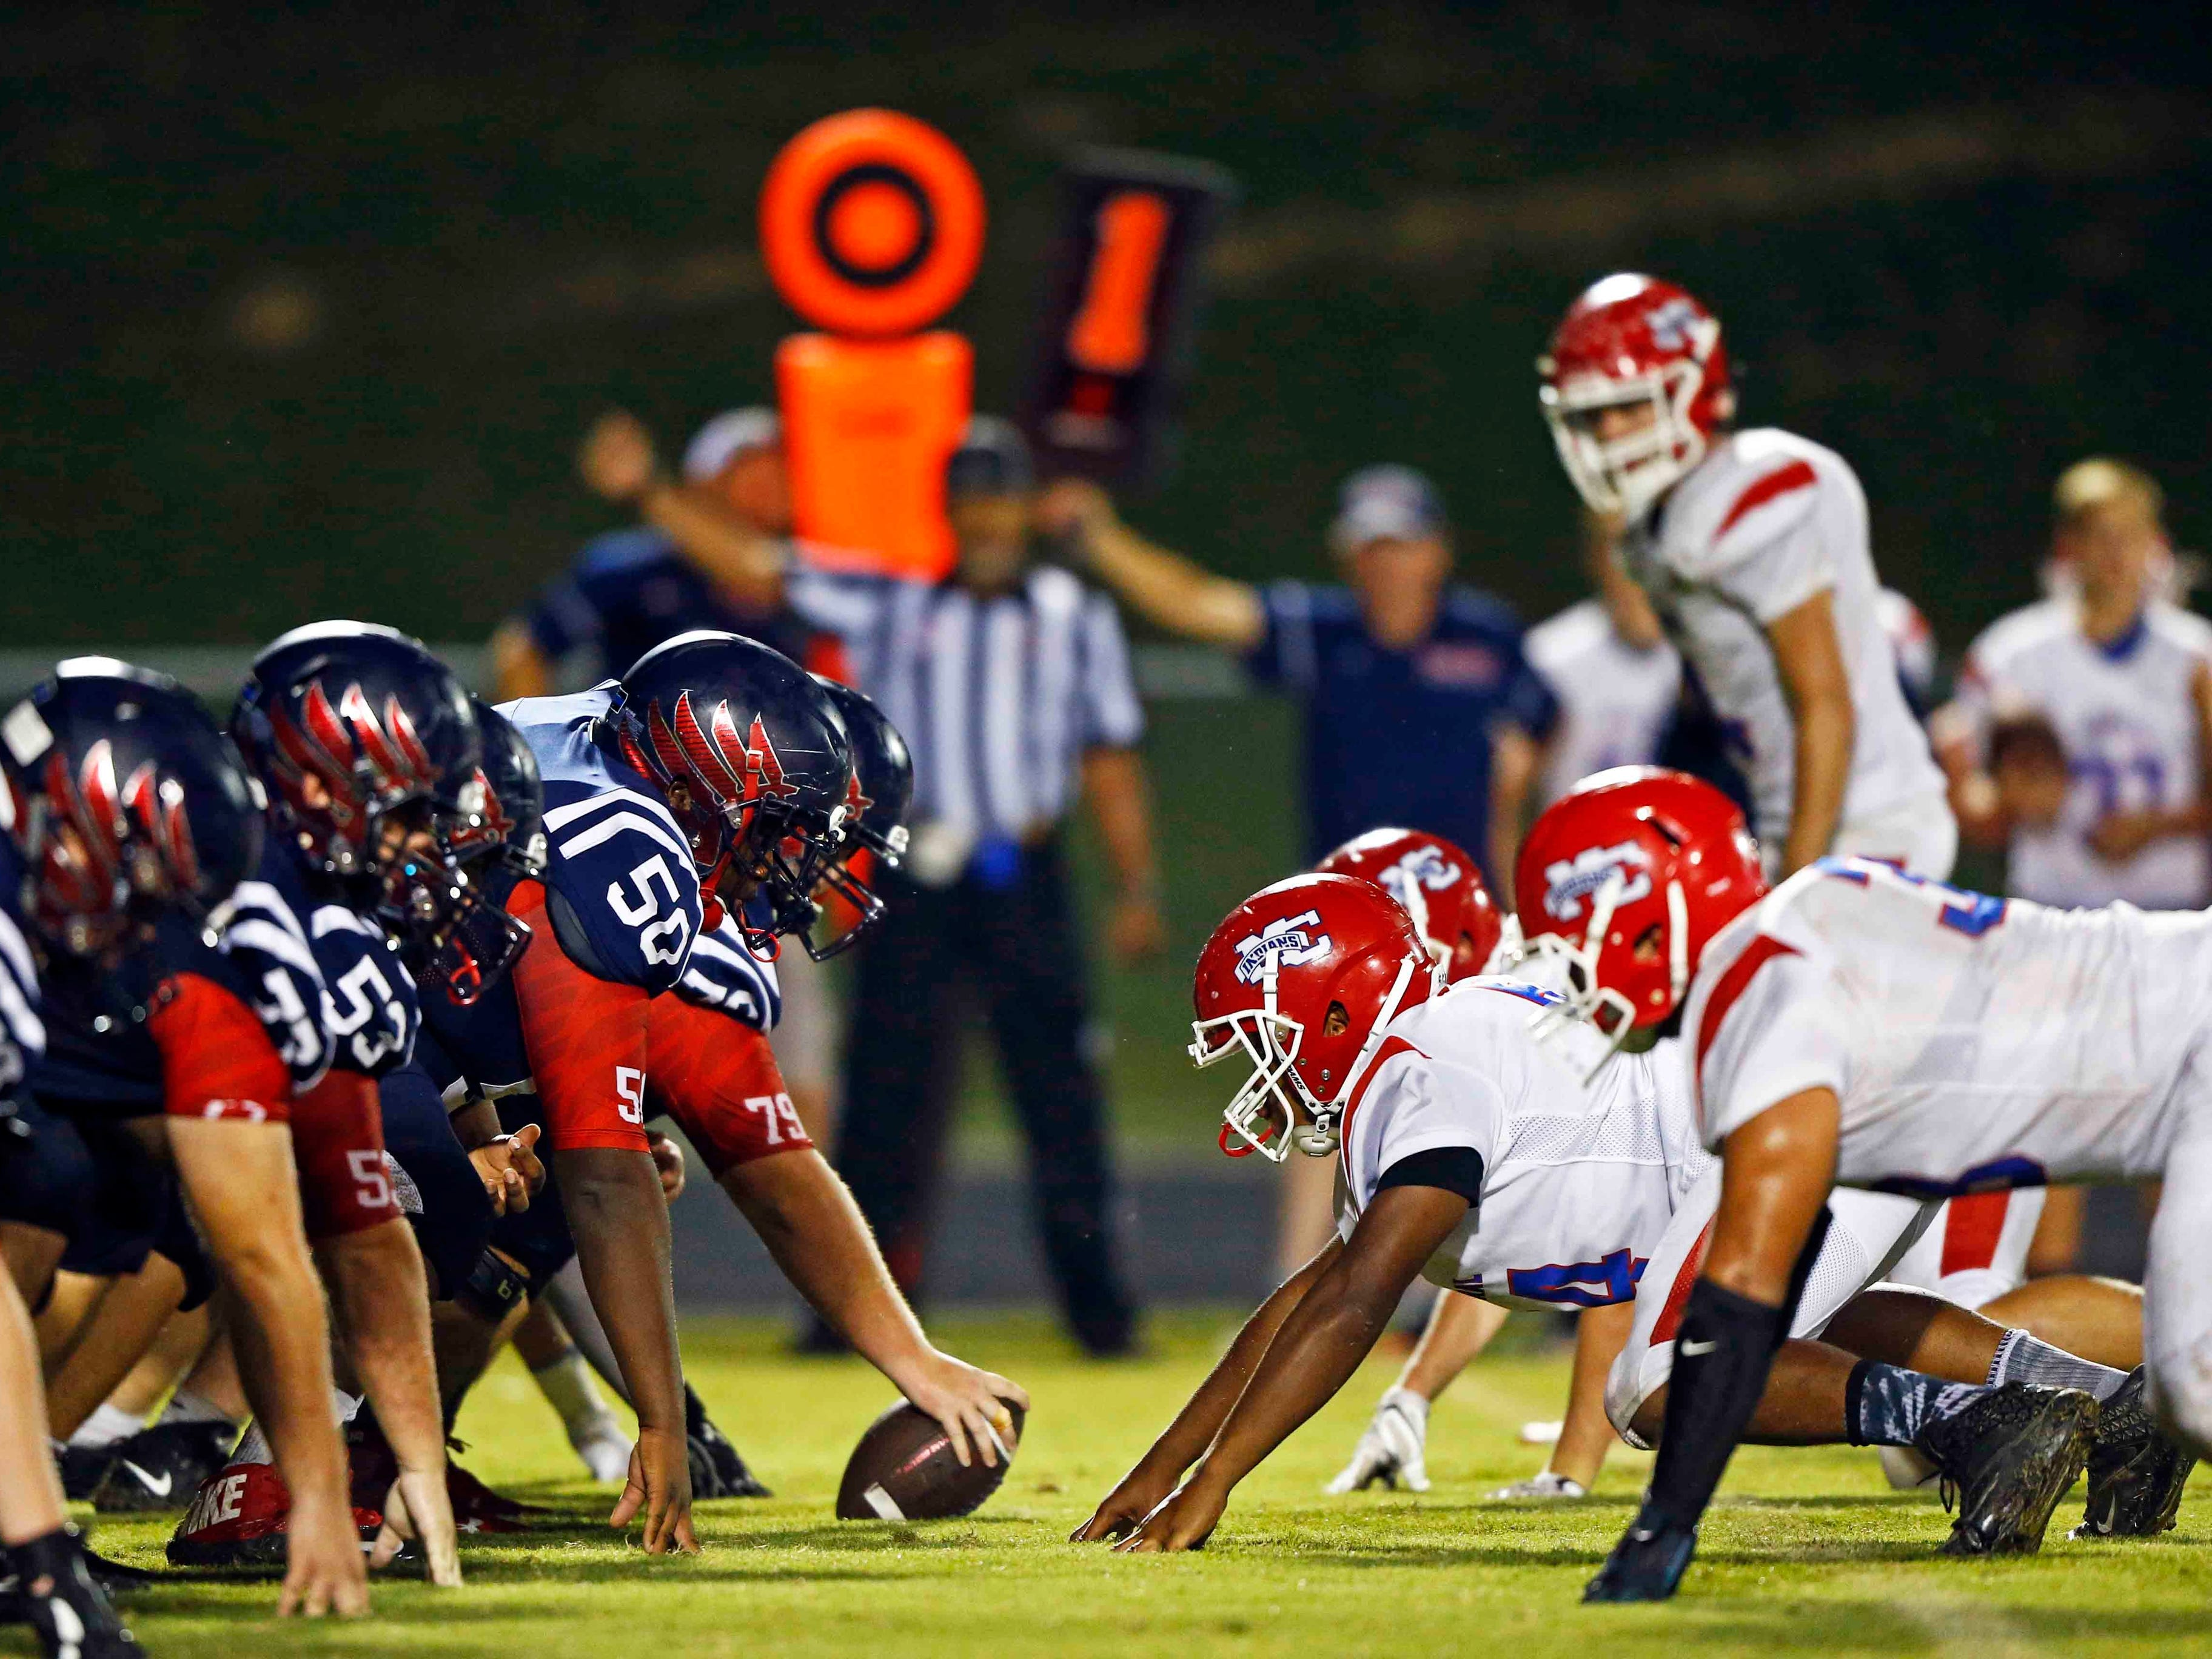 Creek Wood and Montgomery Central line up against each other during their game Friday, Sept. 14, 2018, in Charlotte, Tenn.